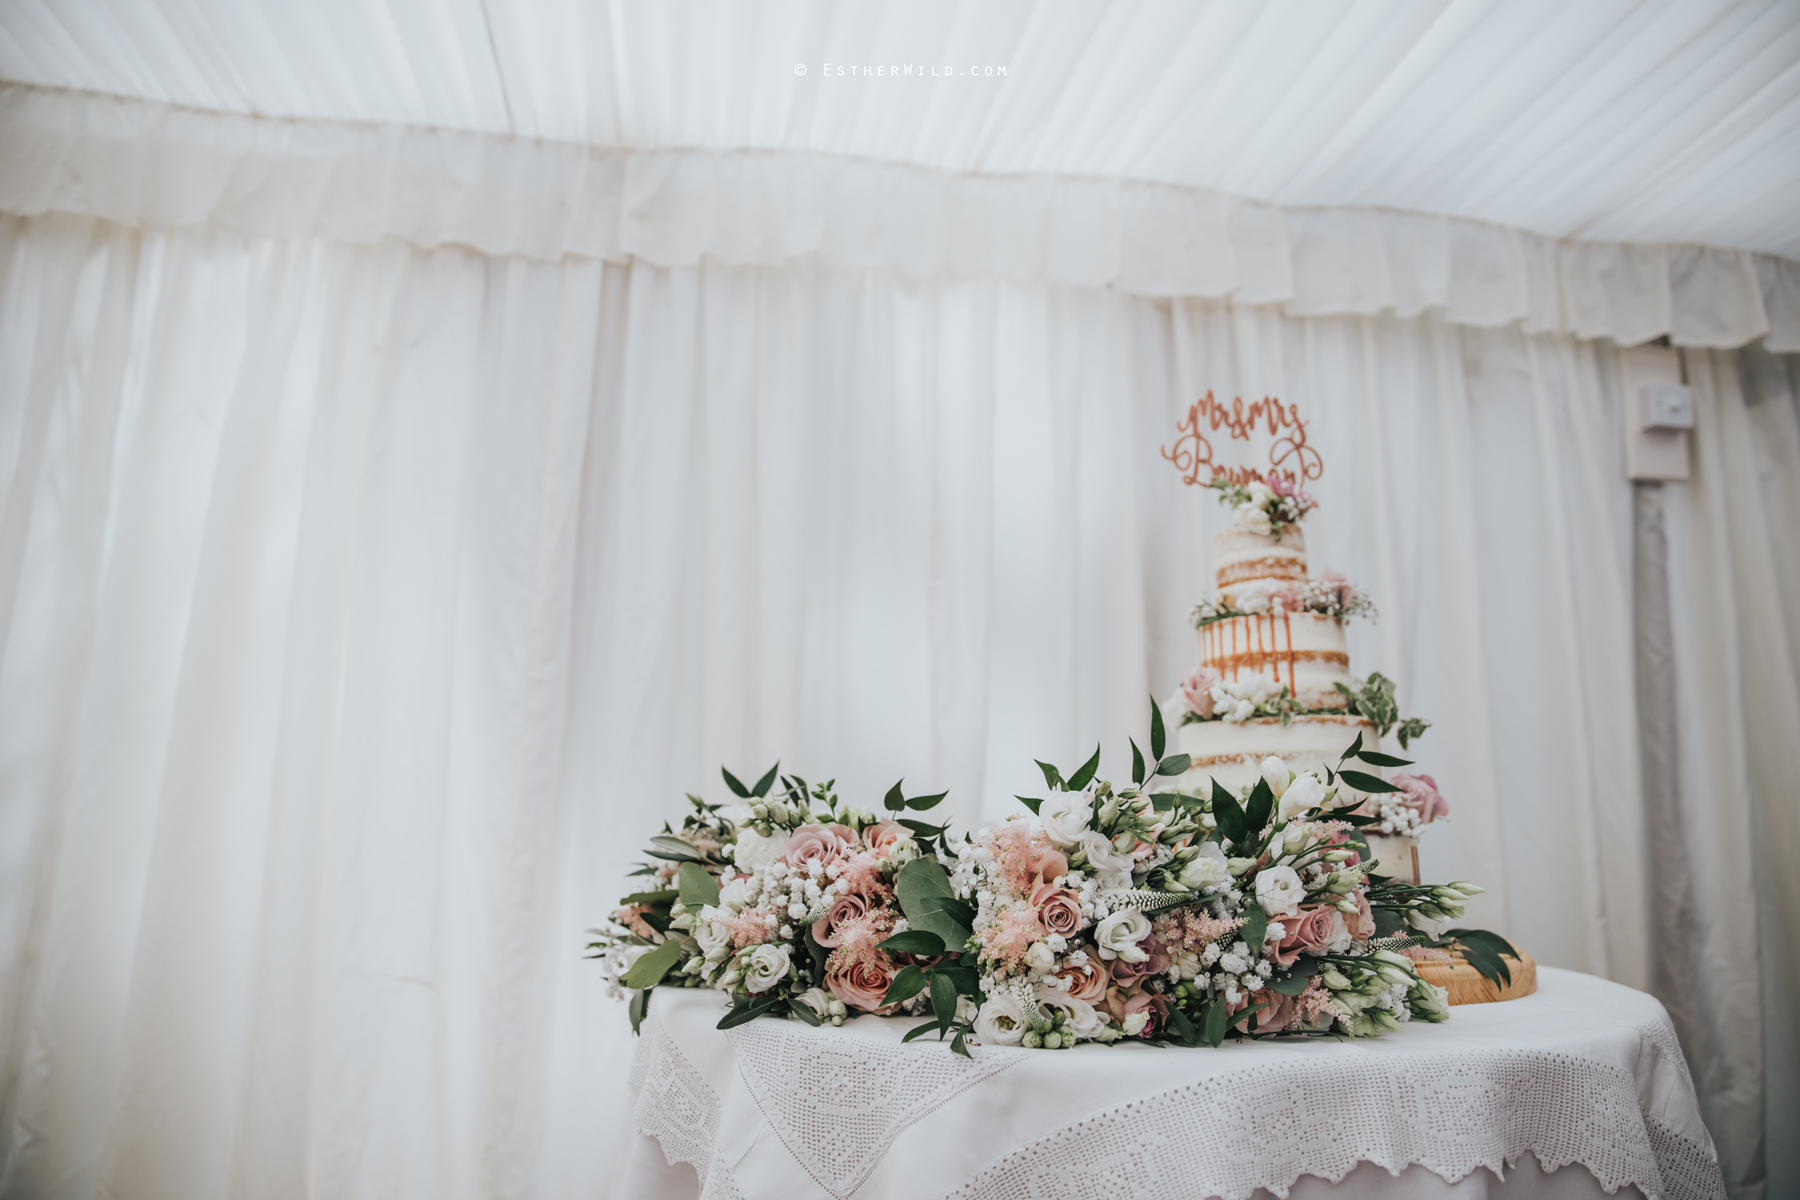 Wootton_Wedding_Copyright_Esther_Wild_Photographer_IMG_1732.jpg